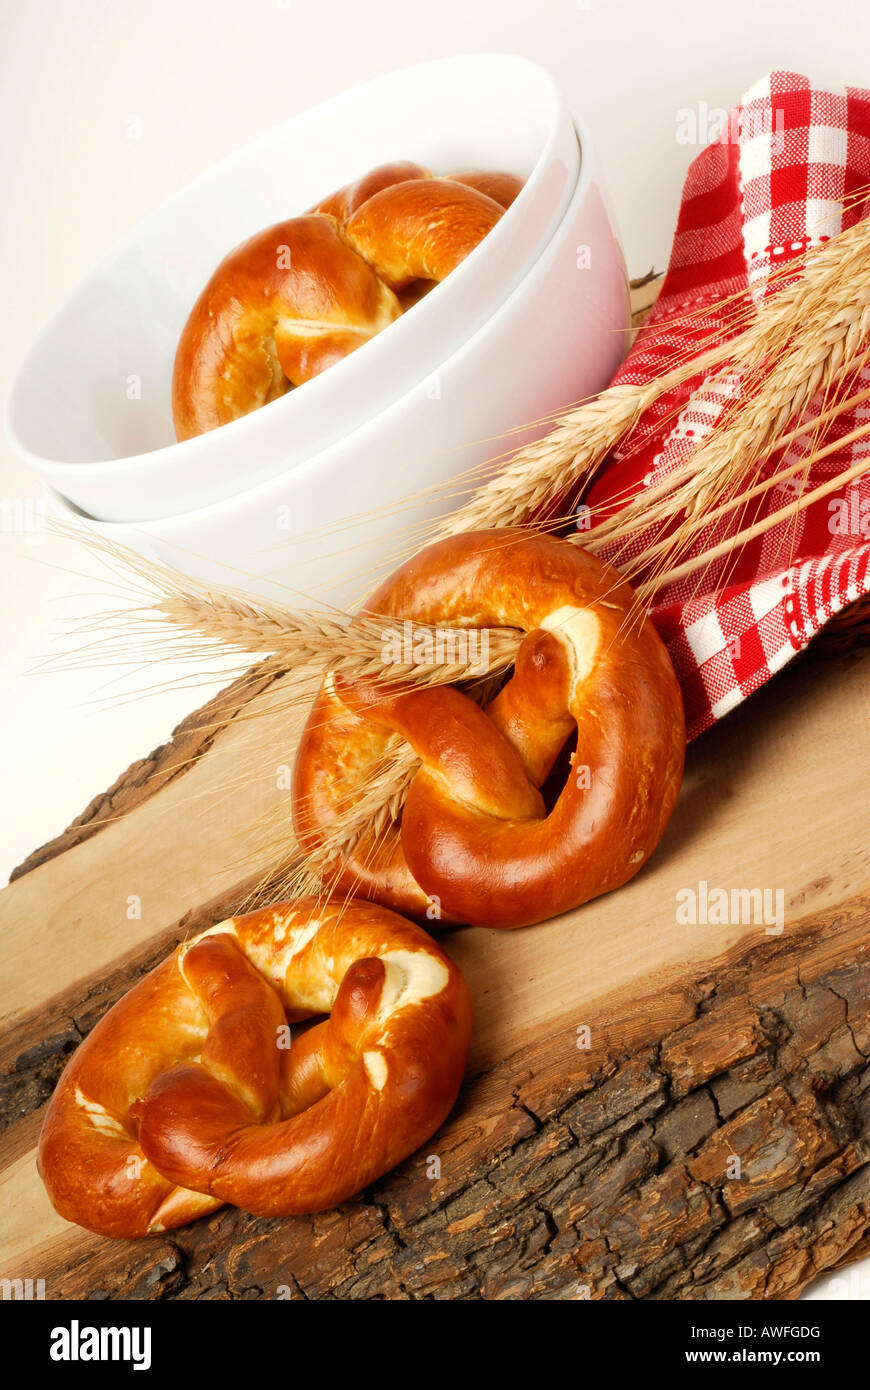 Pretzels and grain ears Stock Photo